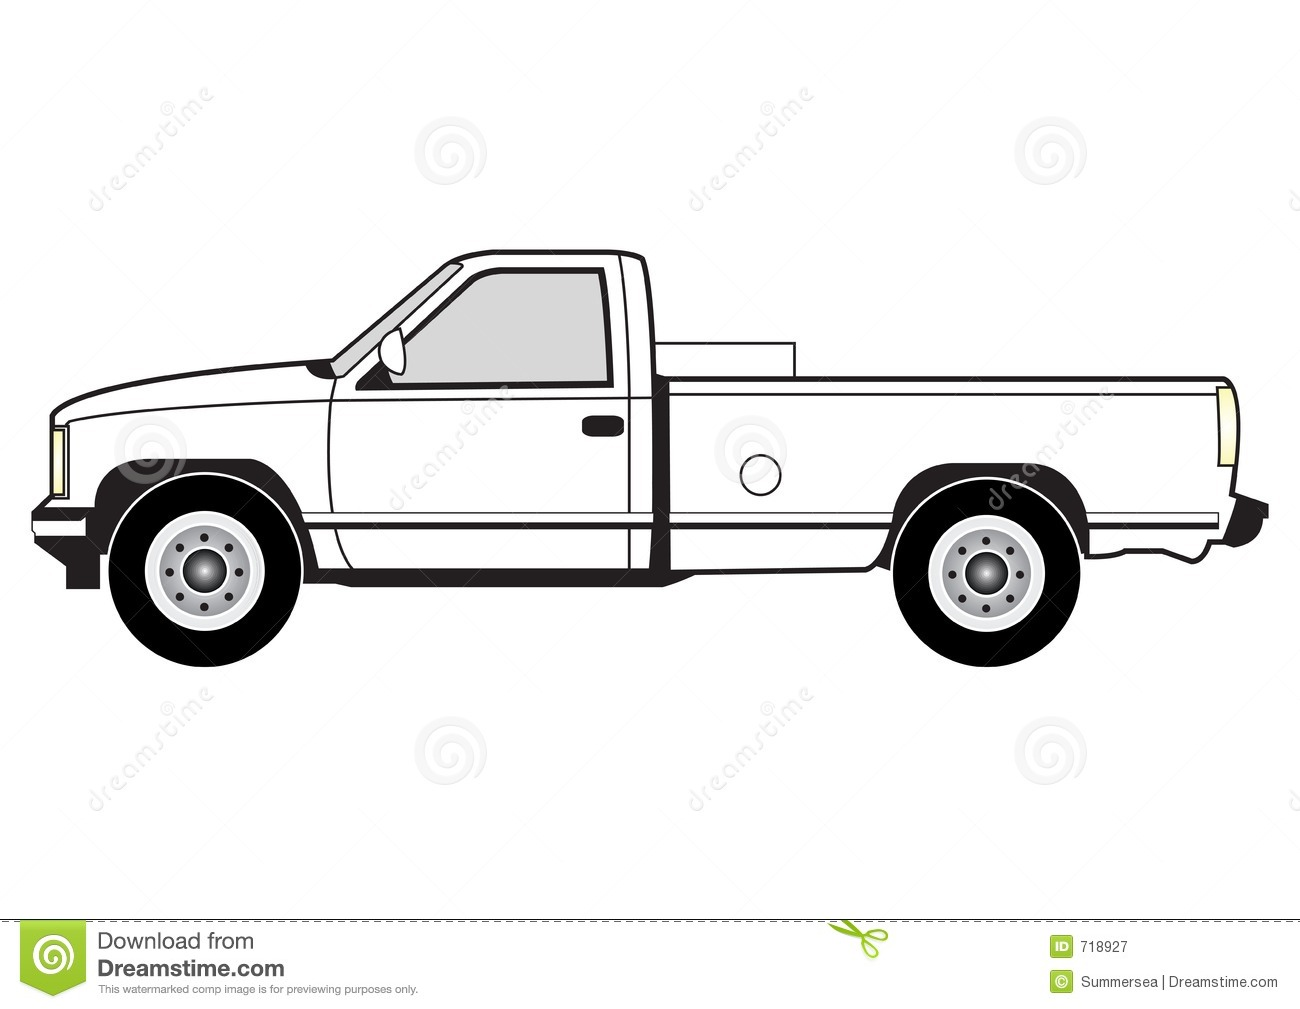 Pick Up Truck Black And White Clipart - Clipart Kid